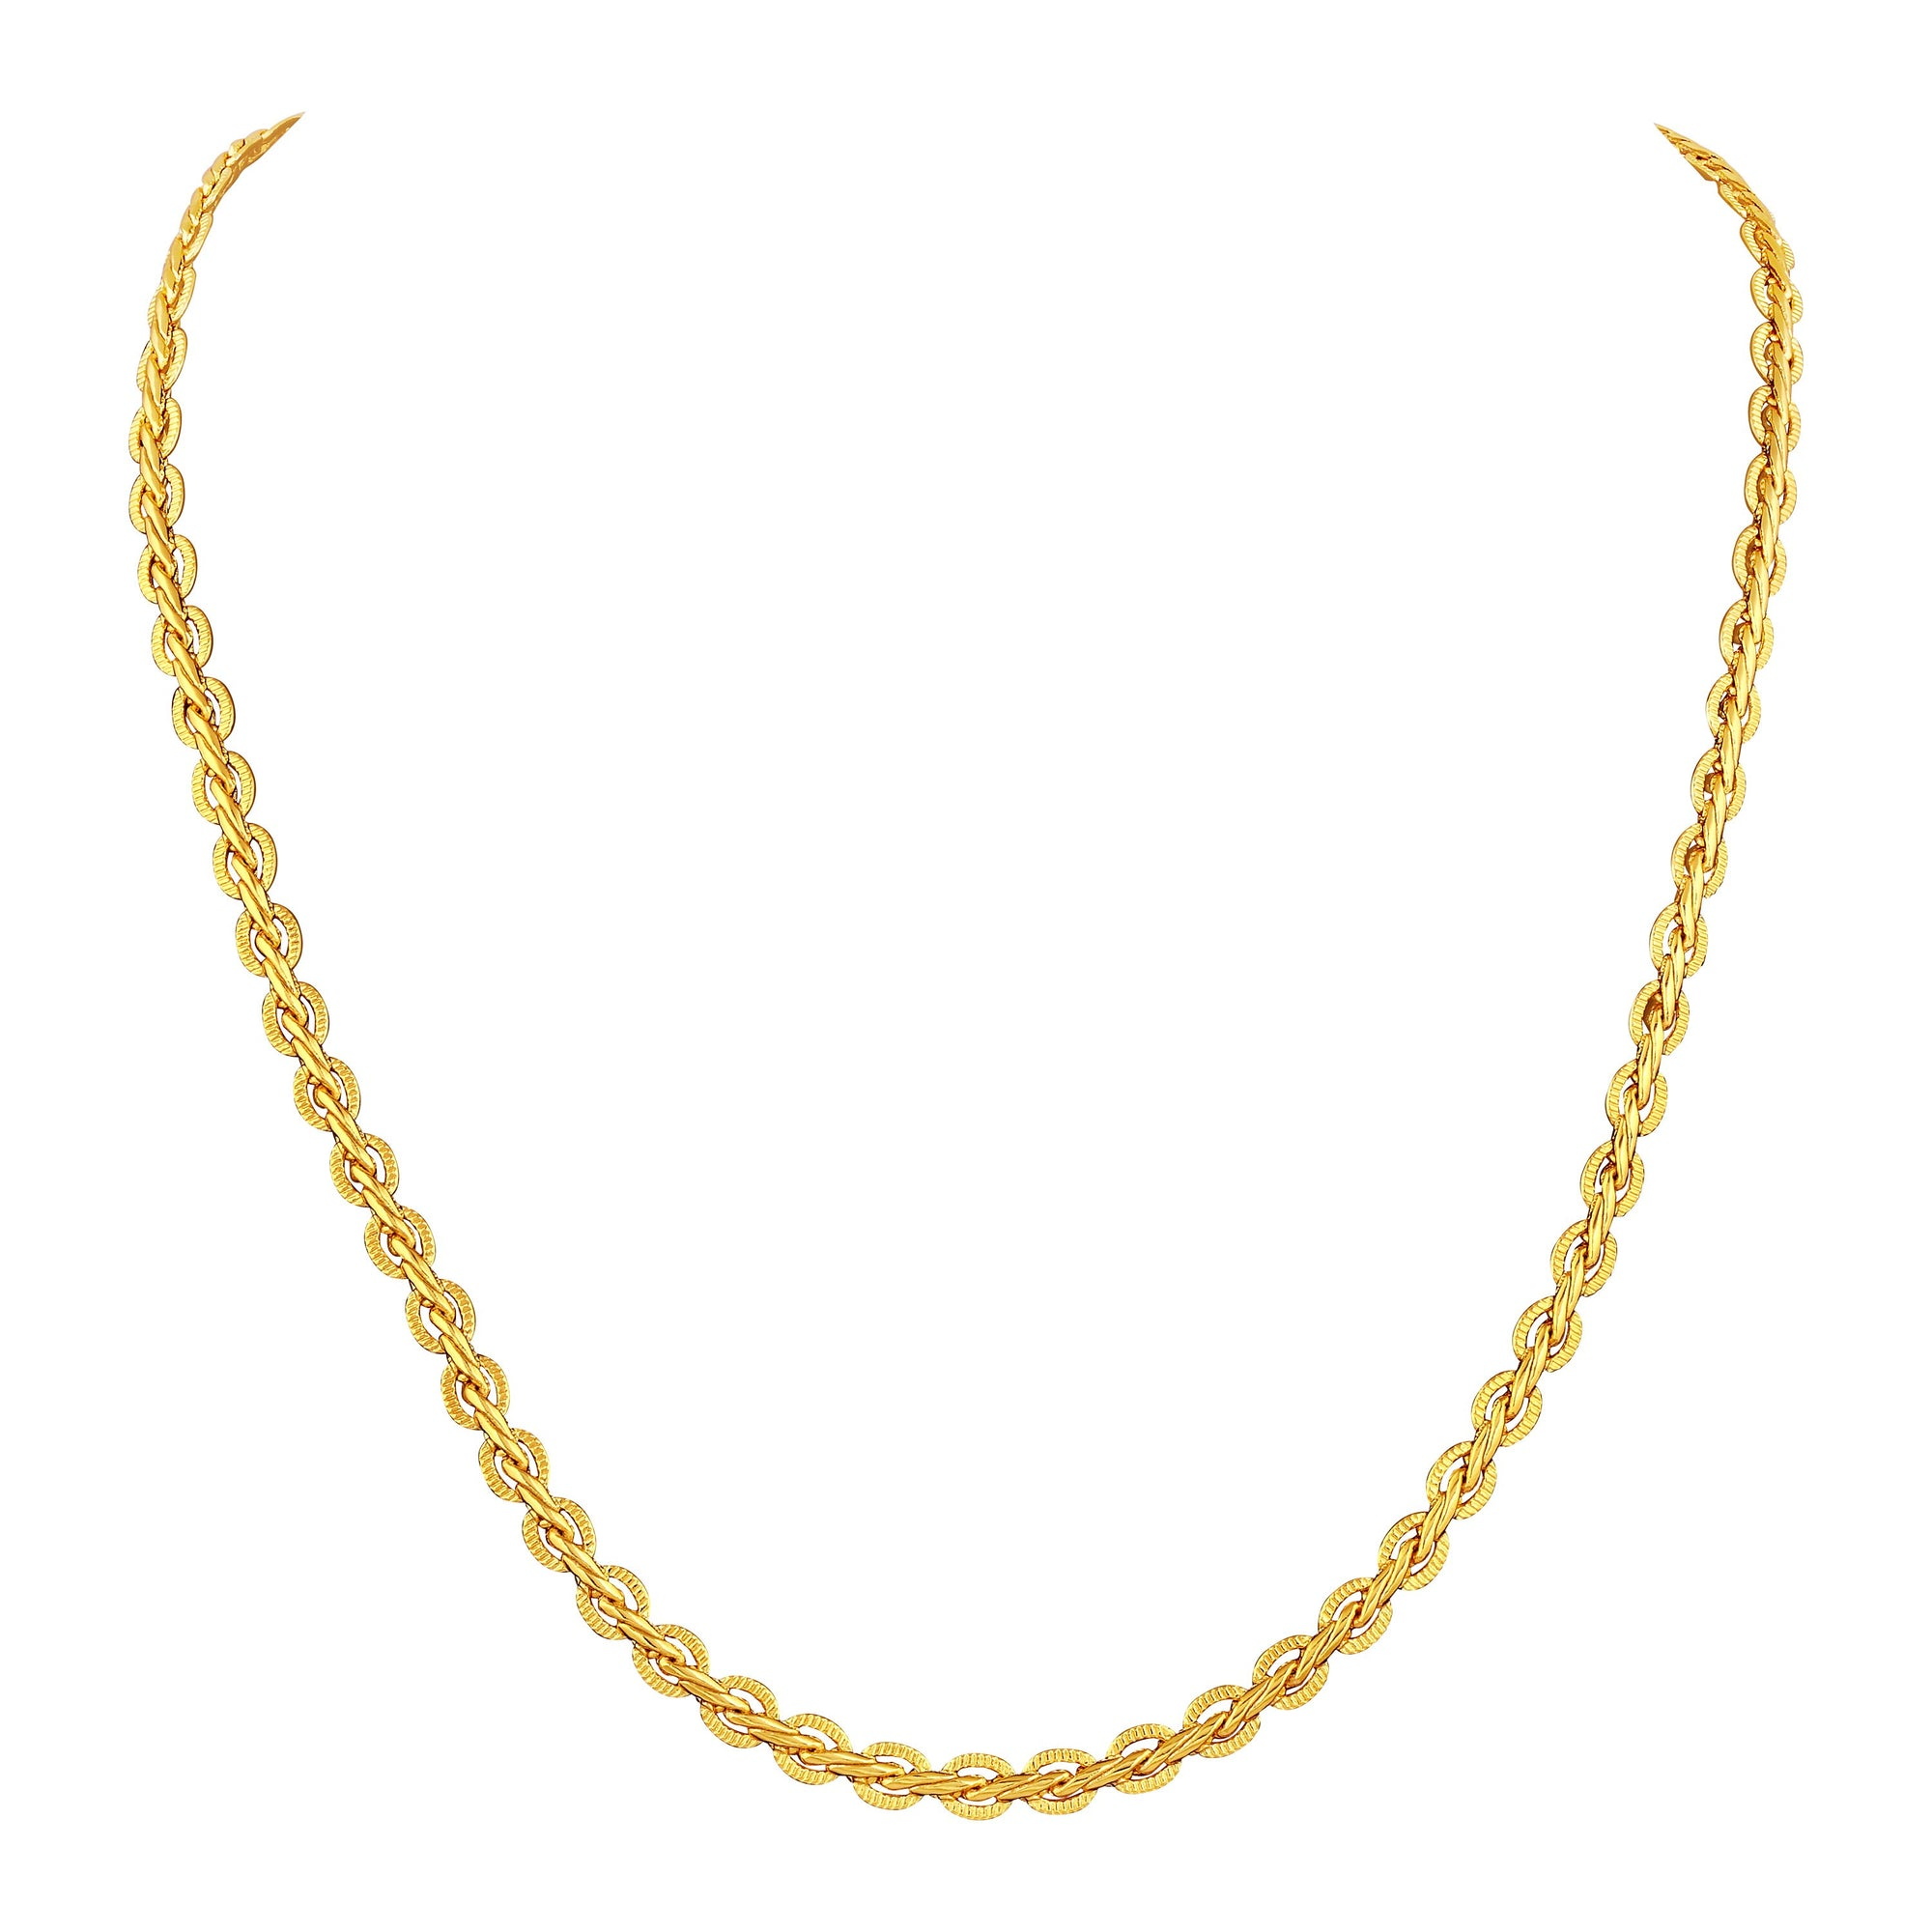 Asmitta Jewellery Chain For Unisex Gold-Copper Chain  -CH105